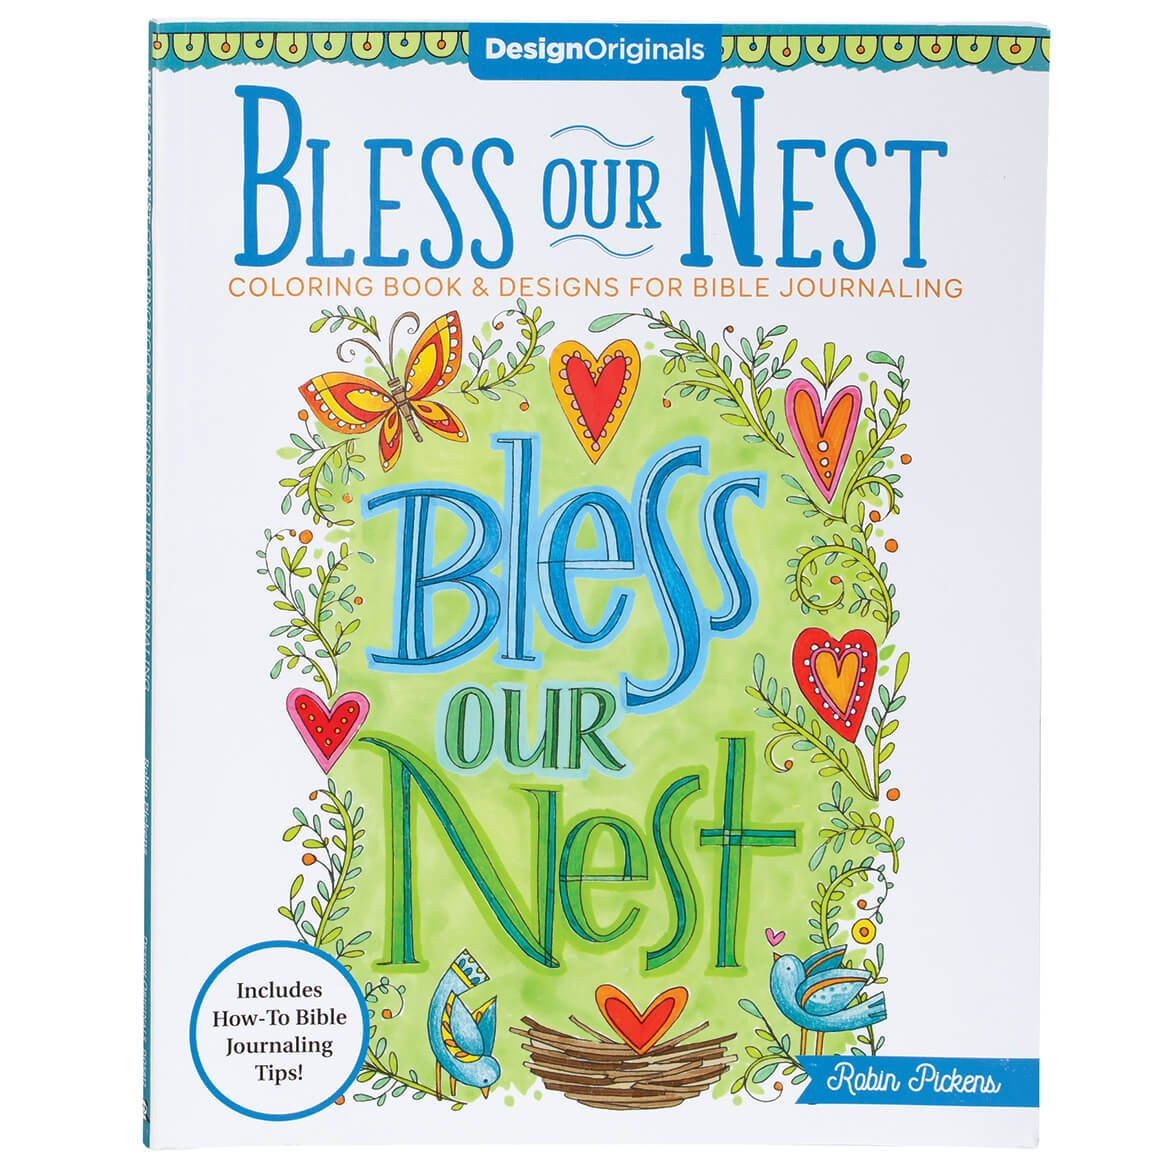 Bless Our Nest Coloring Book & Designs for Bible Journaling-370718